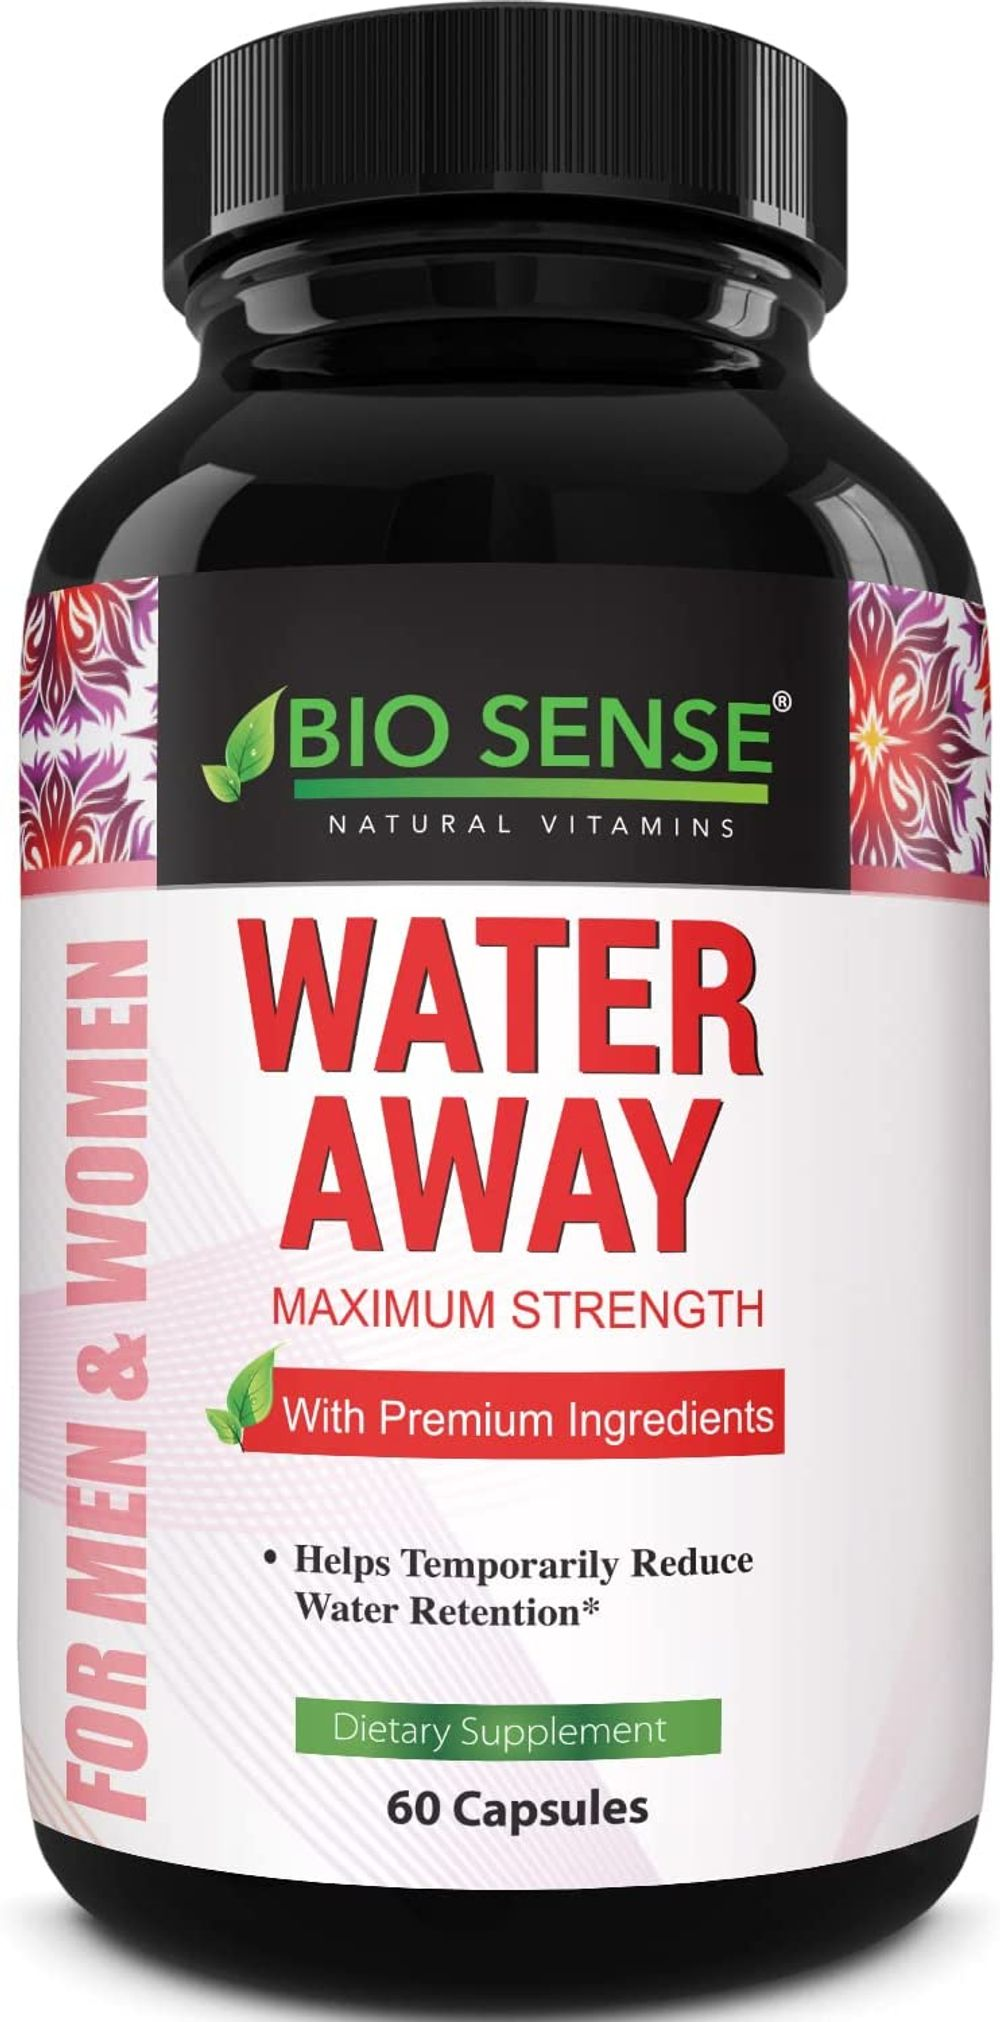 Water Away Pills Diuretic Supplements - Natural Diuretic Water Pills to Reduce Water Retention with Dandelion Leaf Extract Pure Green Tea Juniper Berry Vitamin B6 for Water Balance and Kidney Cleanse